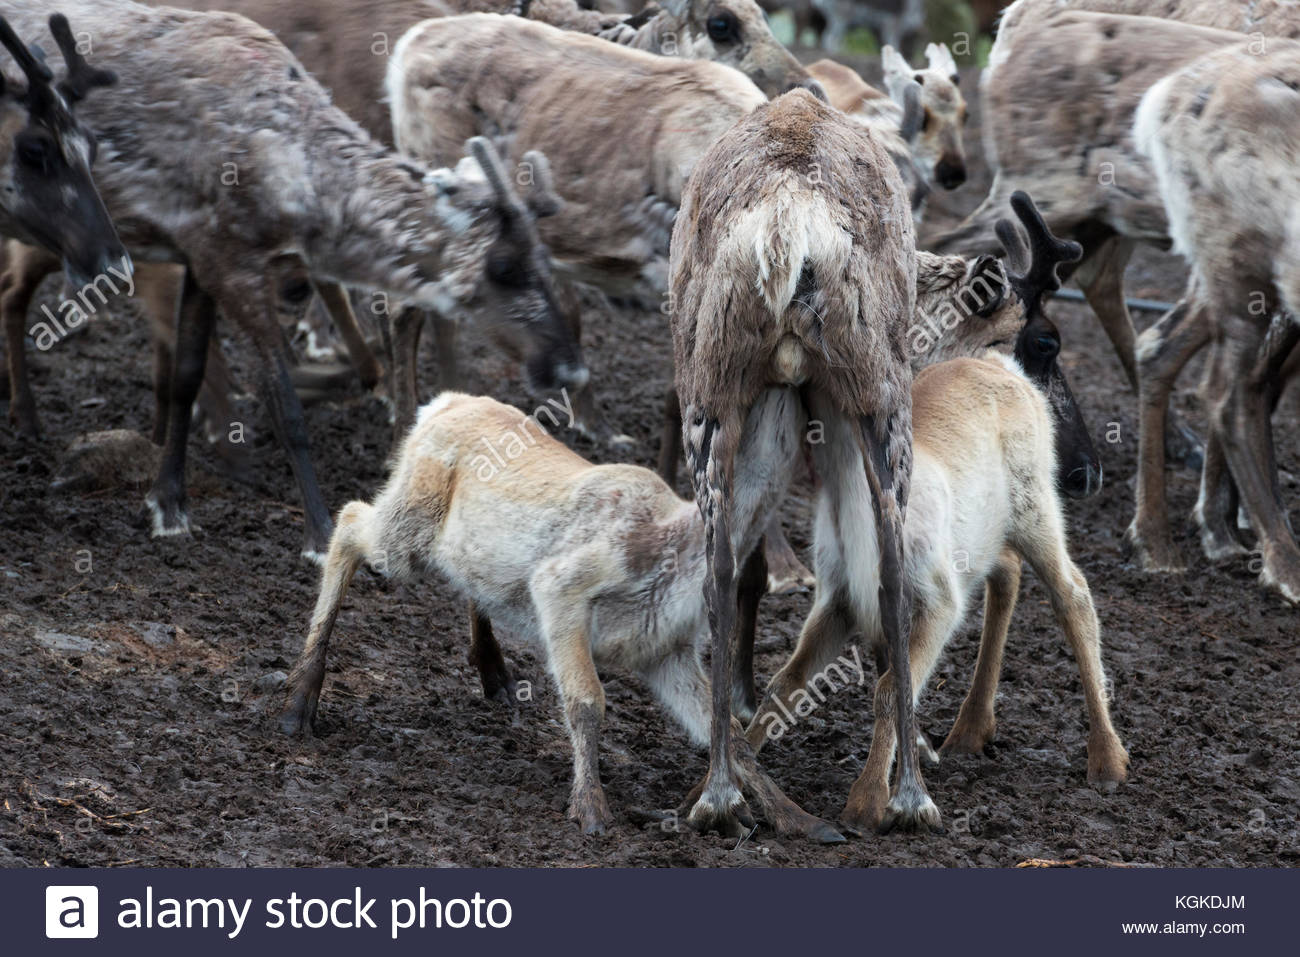 Semi-domesticated reindeer, Rangifer tarandus, running inside an enclosure during calf-marking. - Stock Image